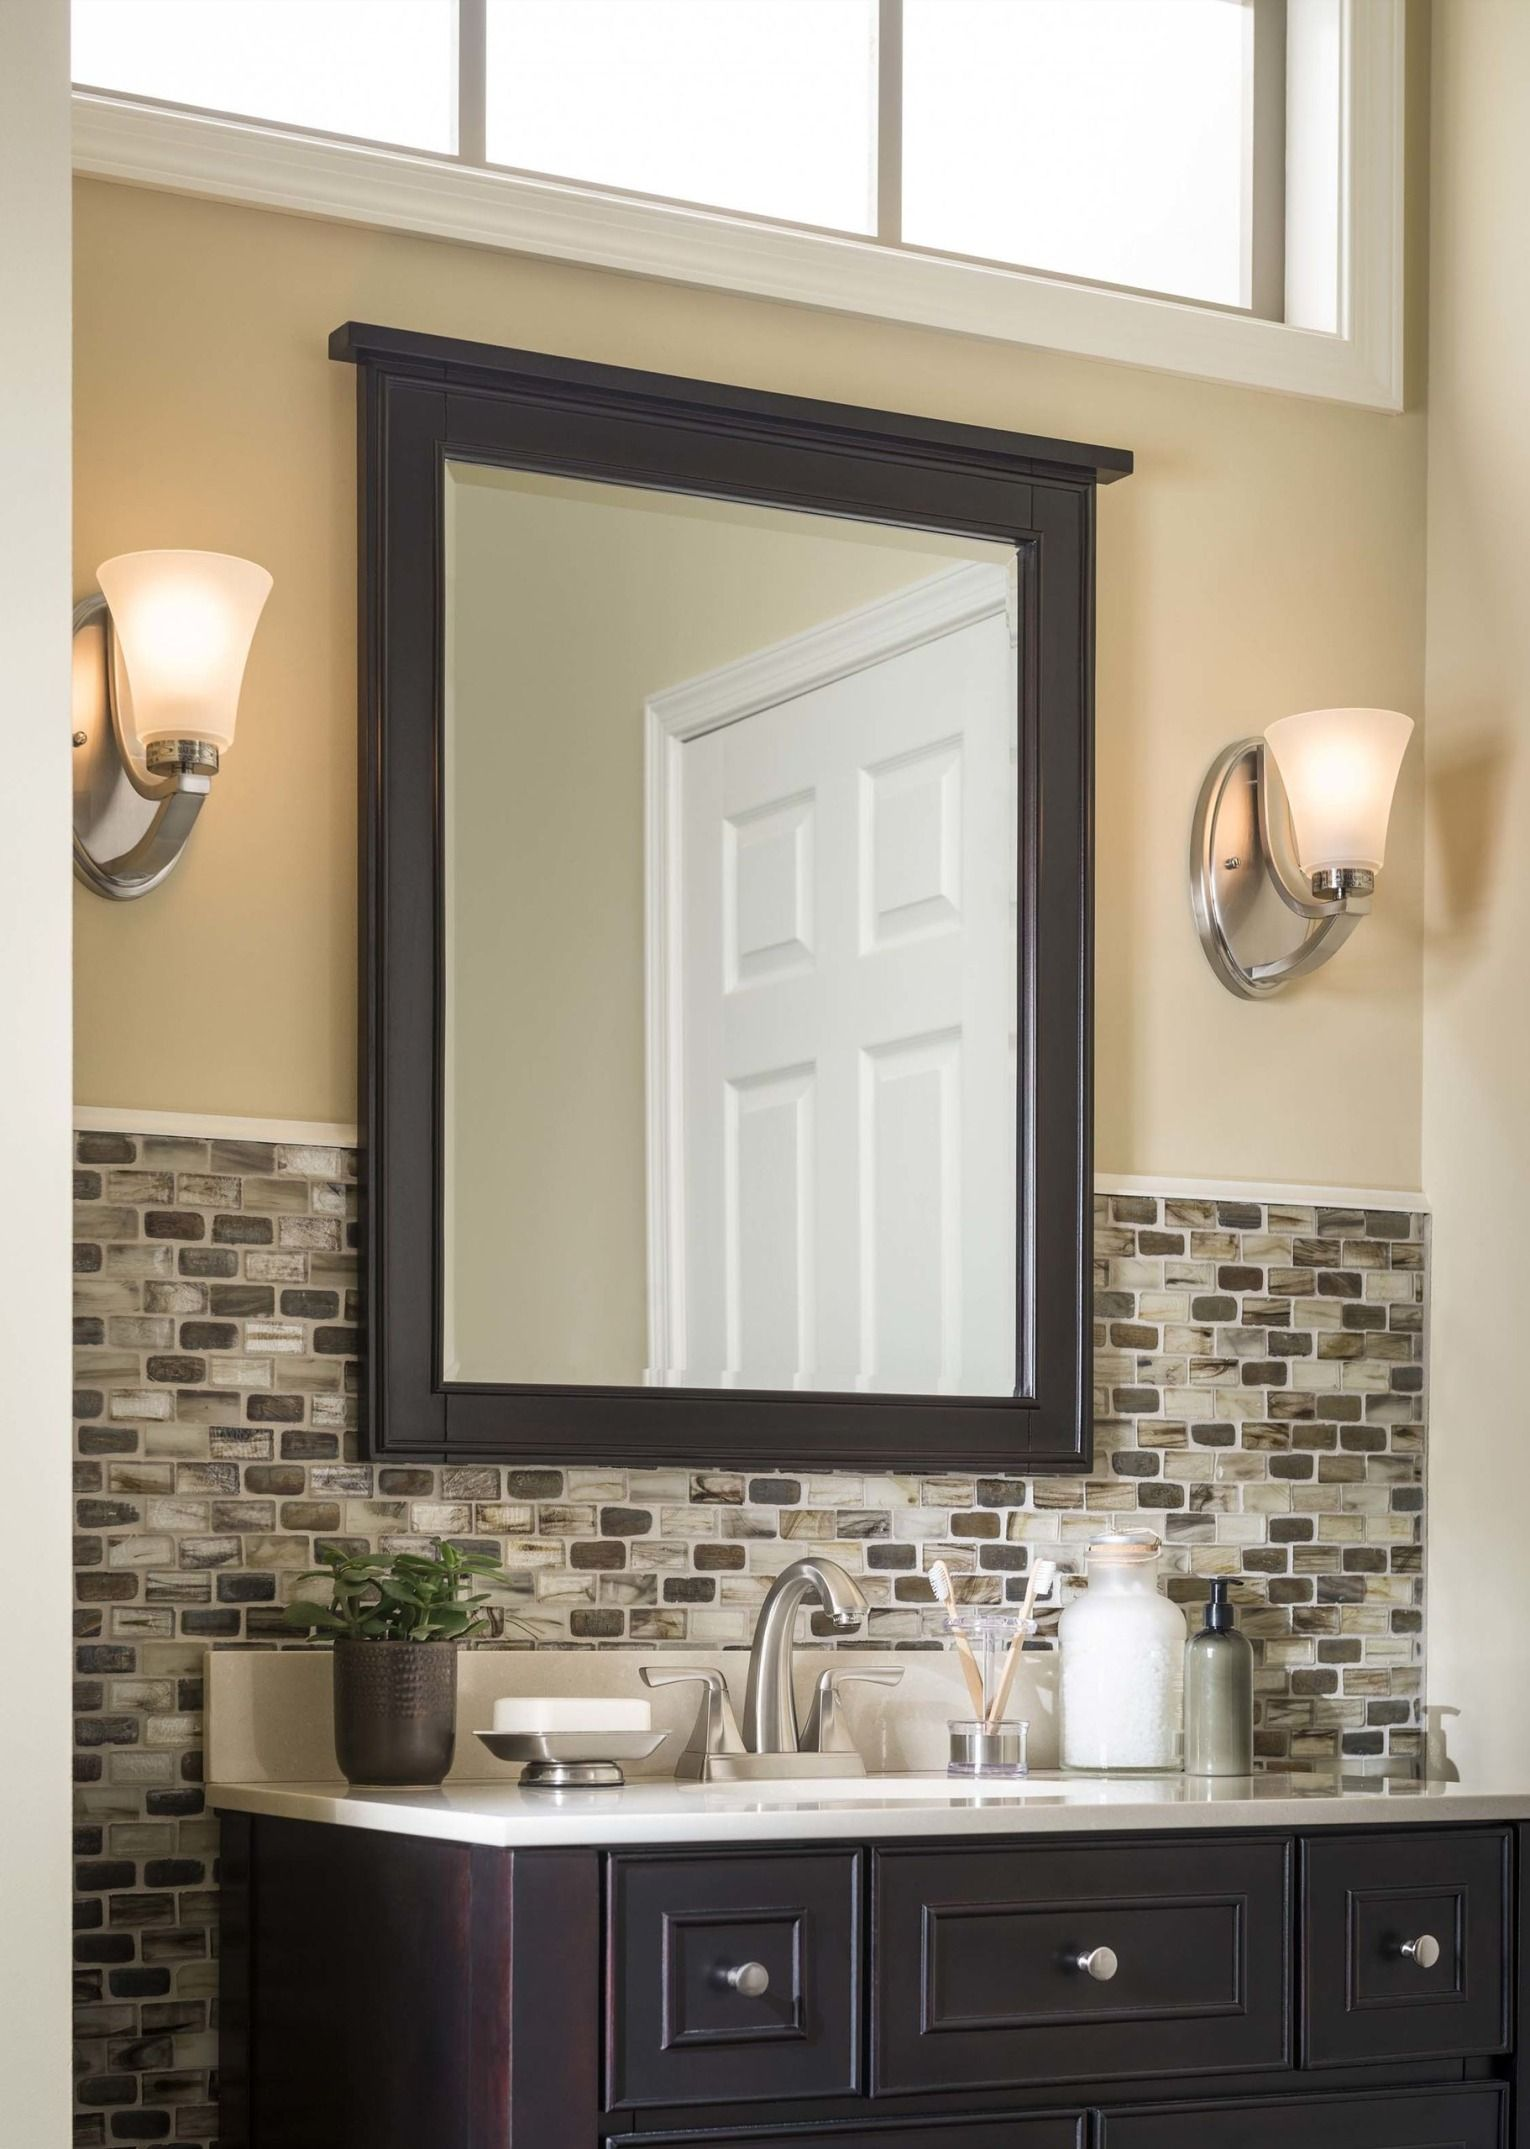 backsplash bathroom ideas efficiently optimize lighting in your bathroom with these four simple tips rustic powder room 6225